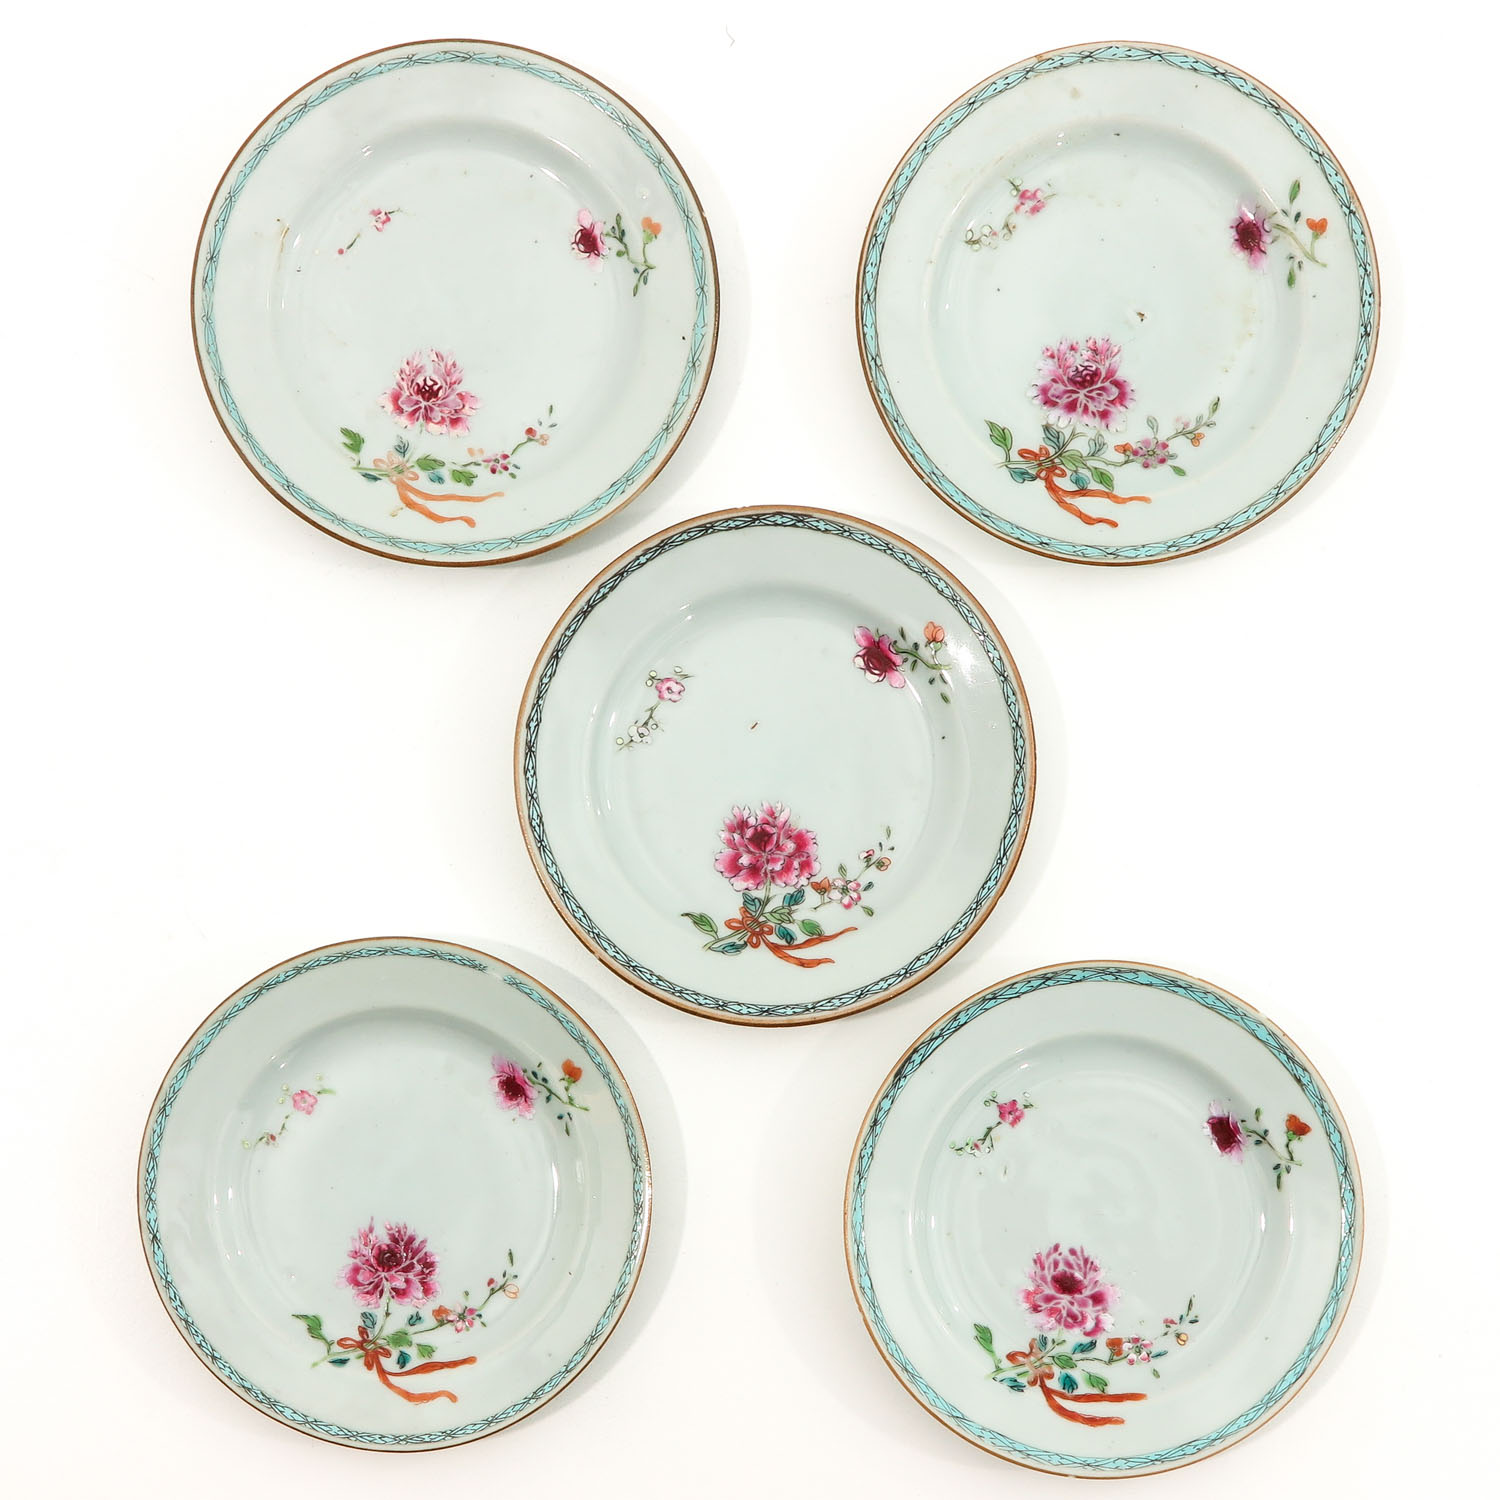 A Series of 5 Famille Rose Plates